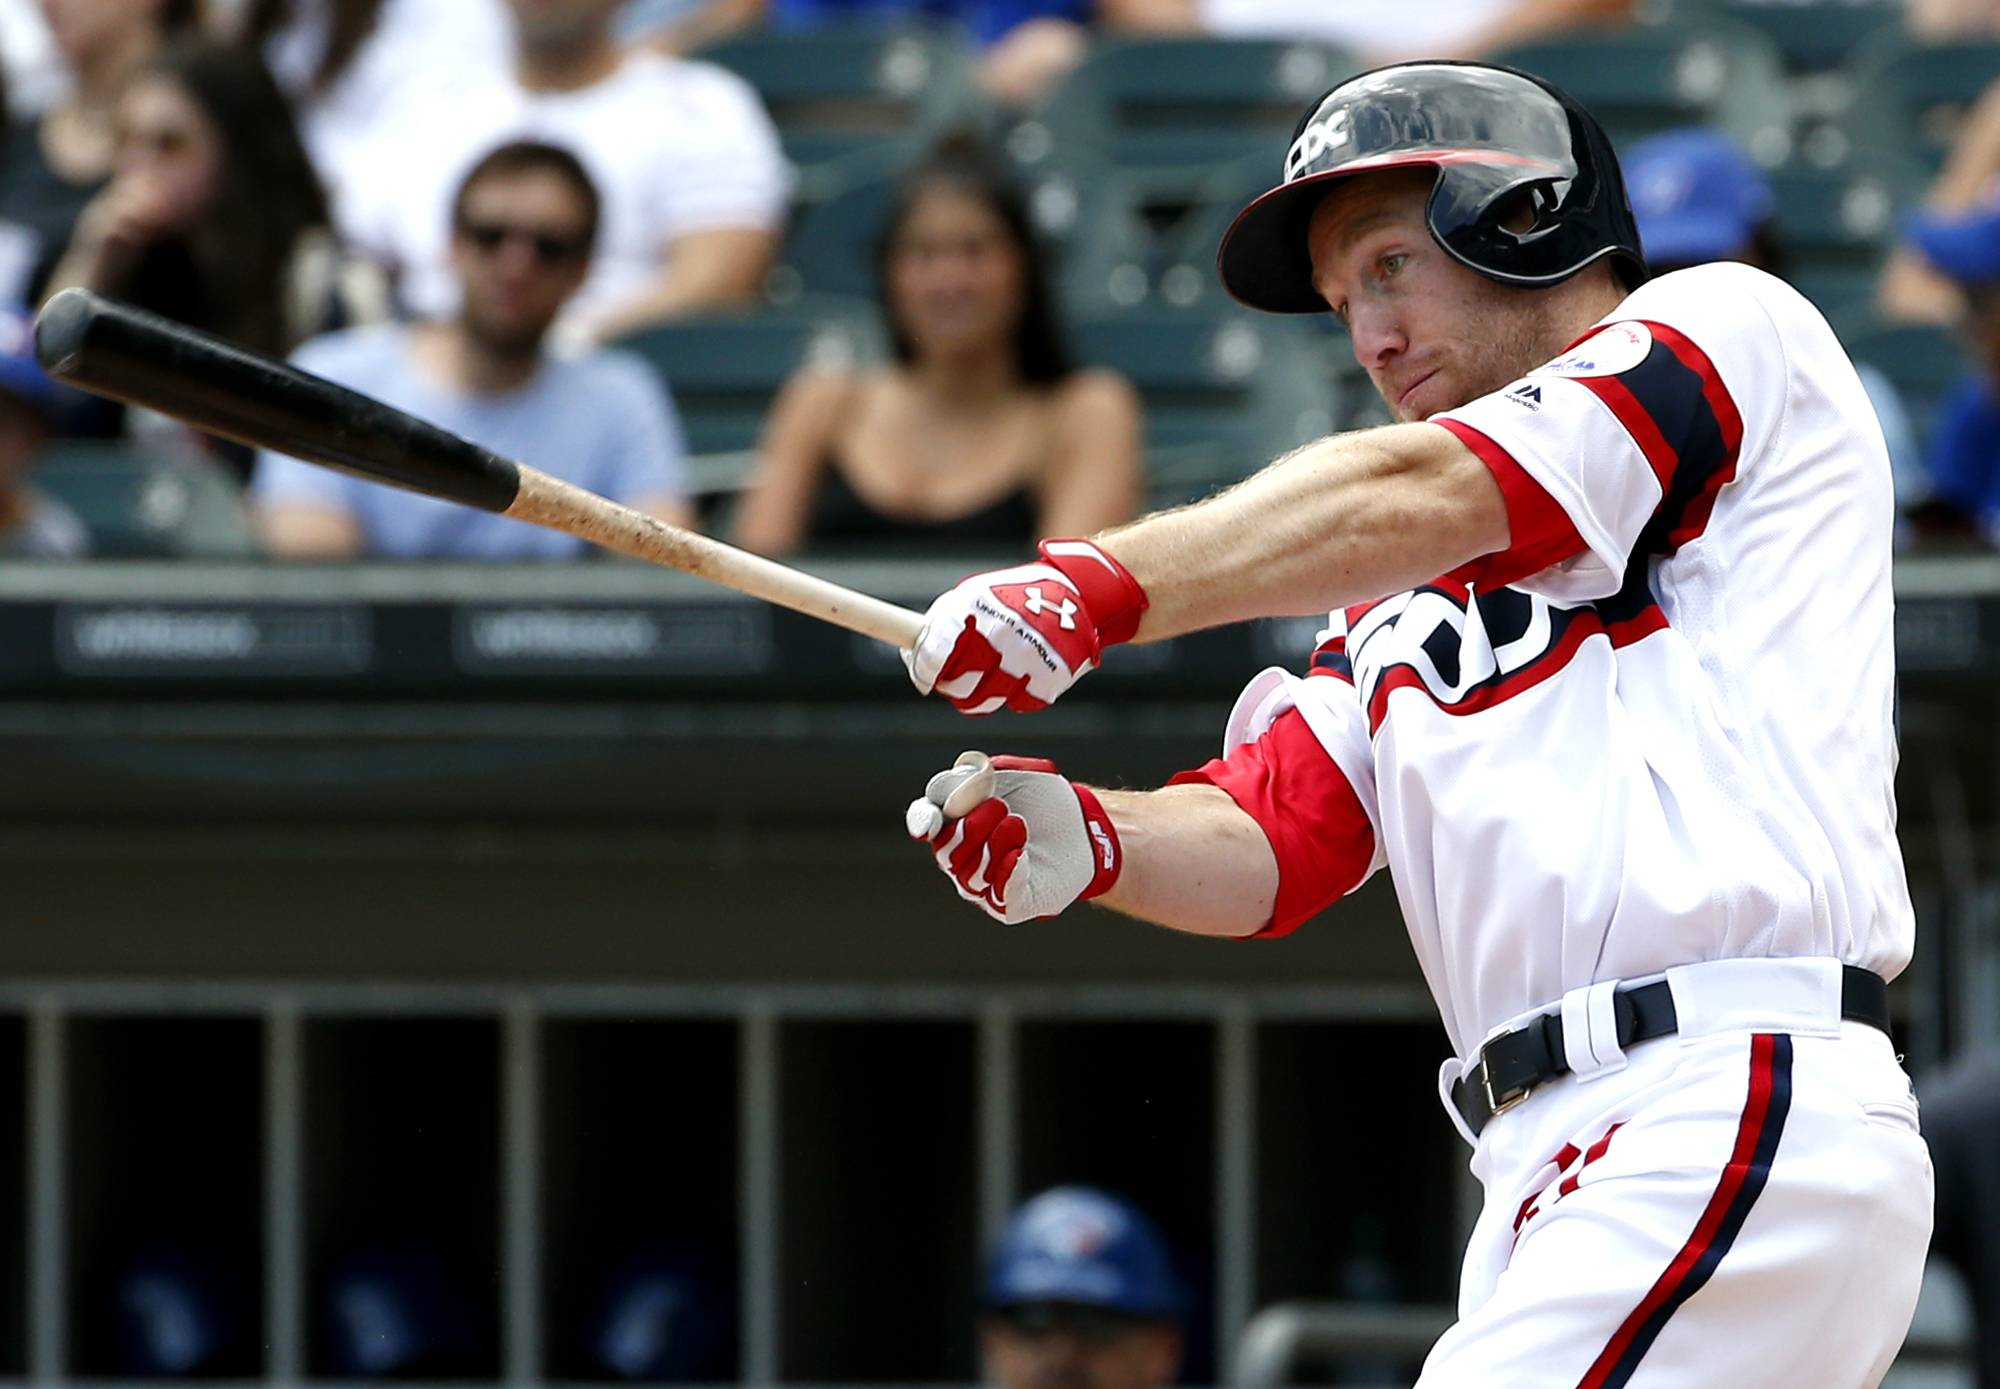 White Sox's Todd Frazier hits a single against the Toronto Blue Jays during the second inning of a baseball game in Chicago, Sunday.